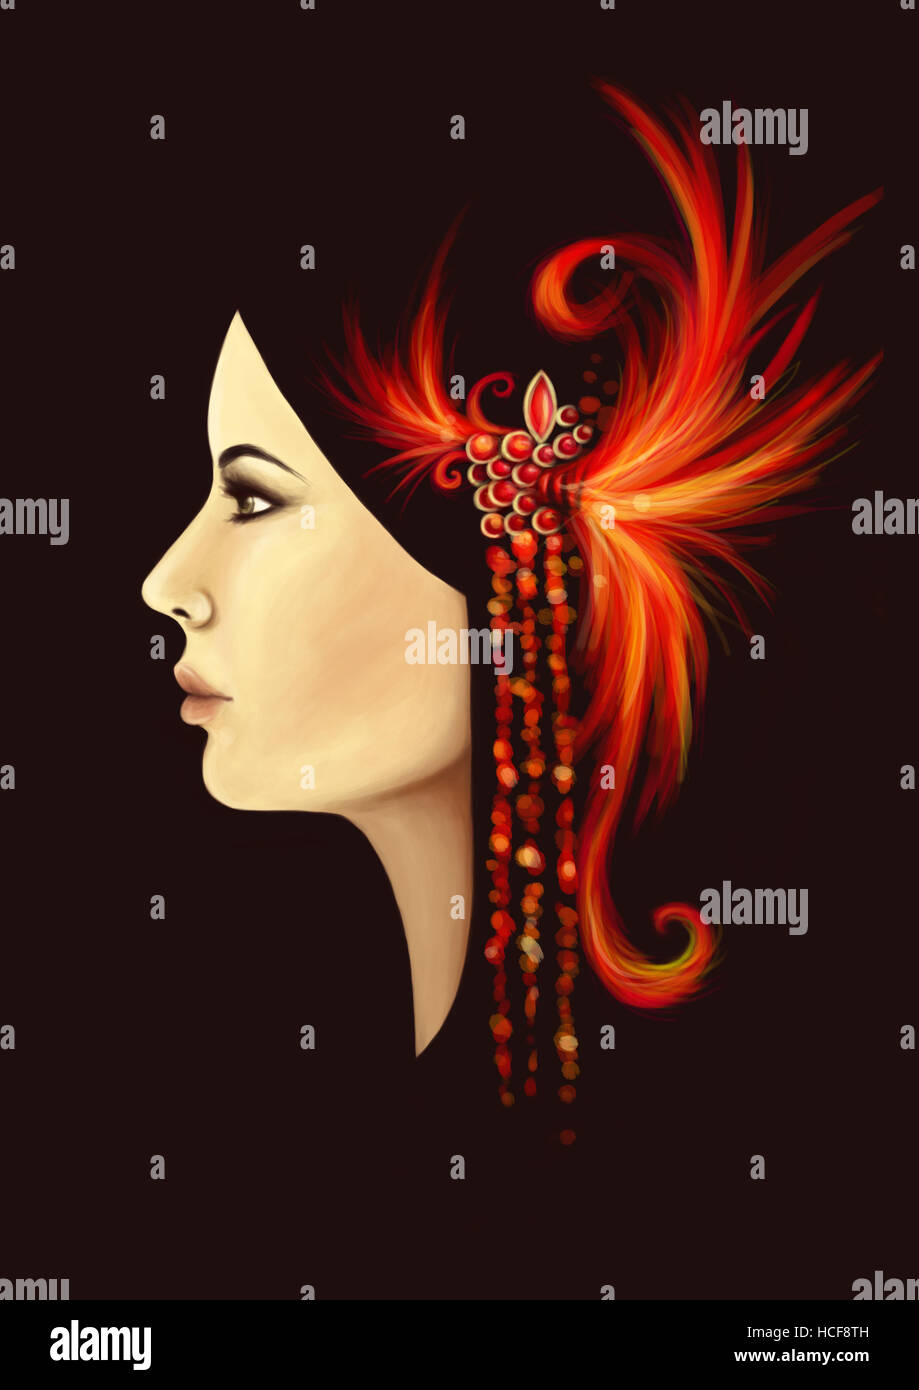 profile portrait of a woman with a fascinator in her hair - Stock Image